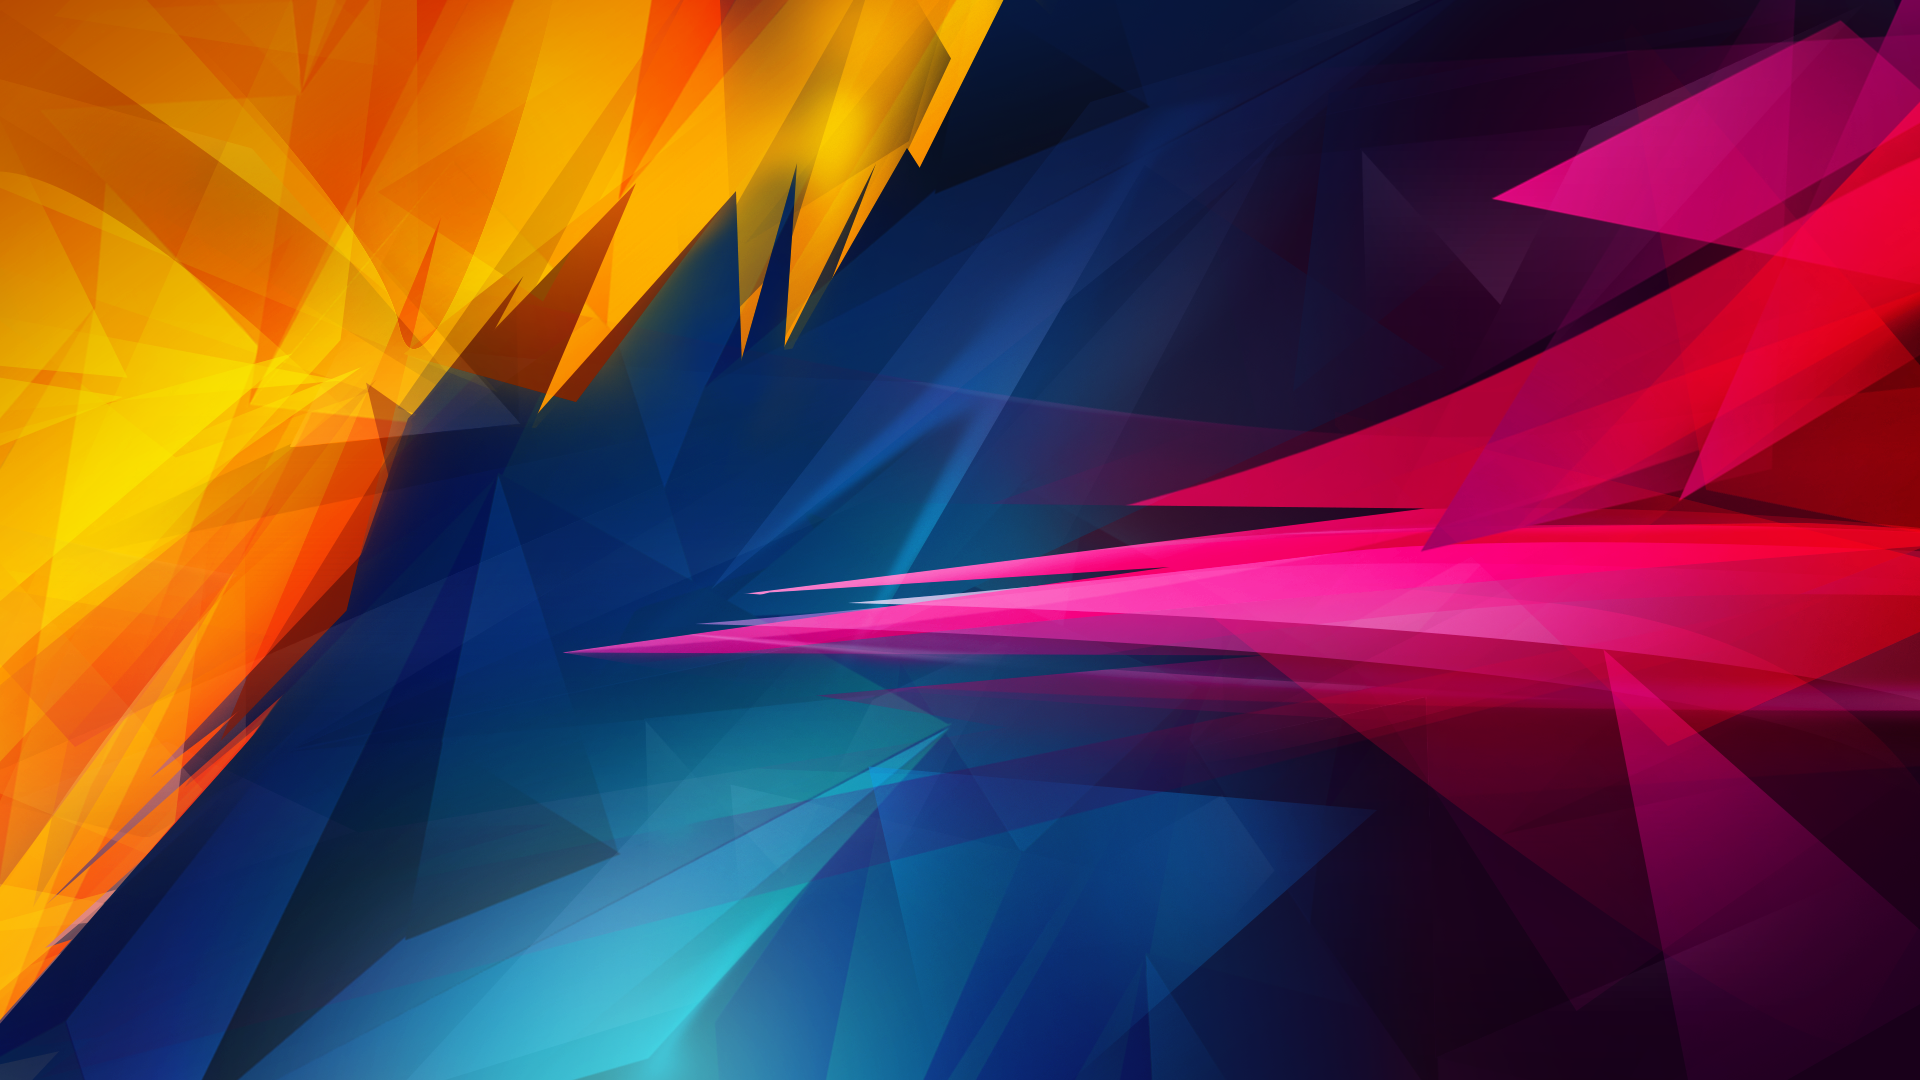 best abstract hd wallpaper 1920x1080 - photo #25